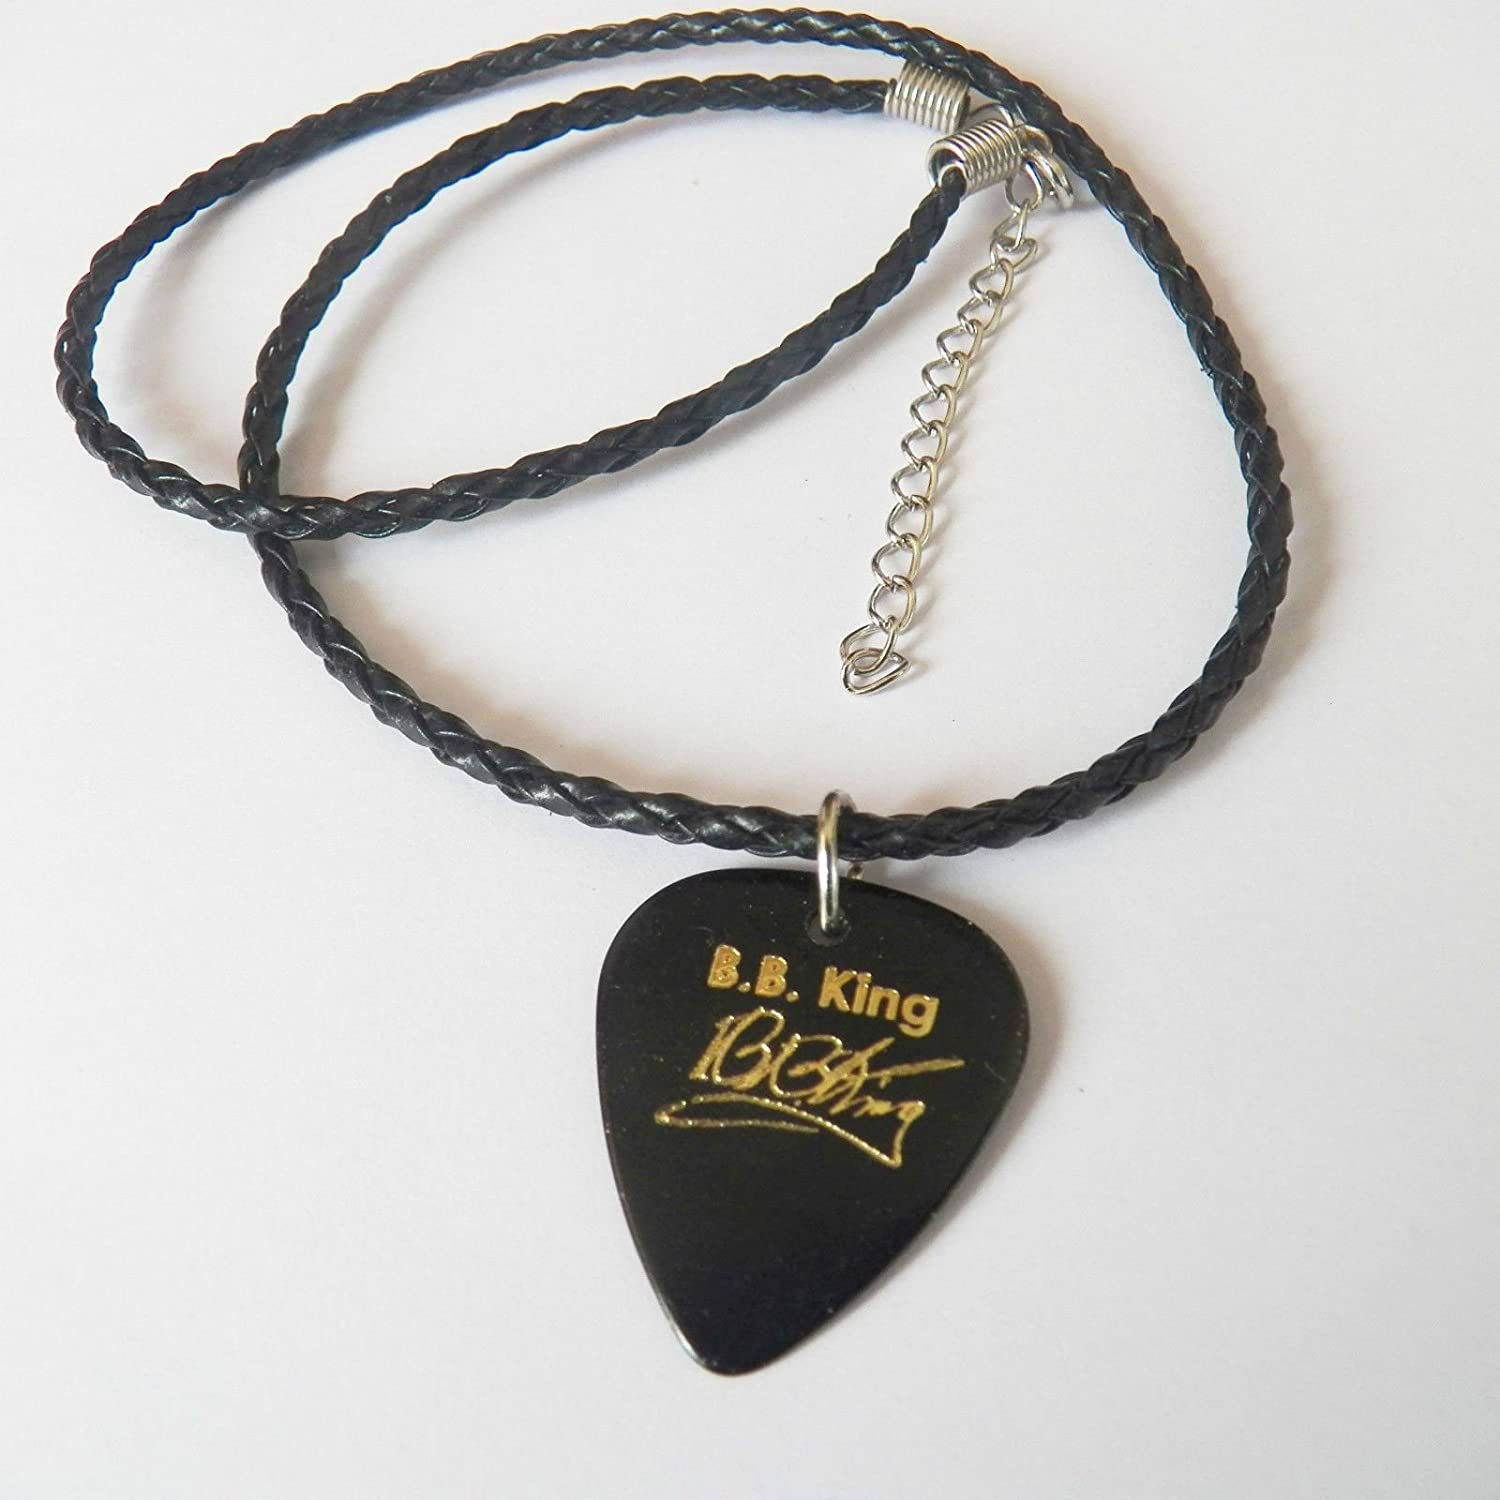 Bbking B.B. King púa de guitarra, firma oro estampado, 18